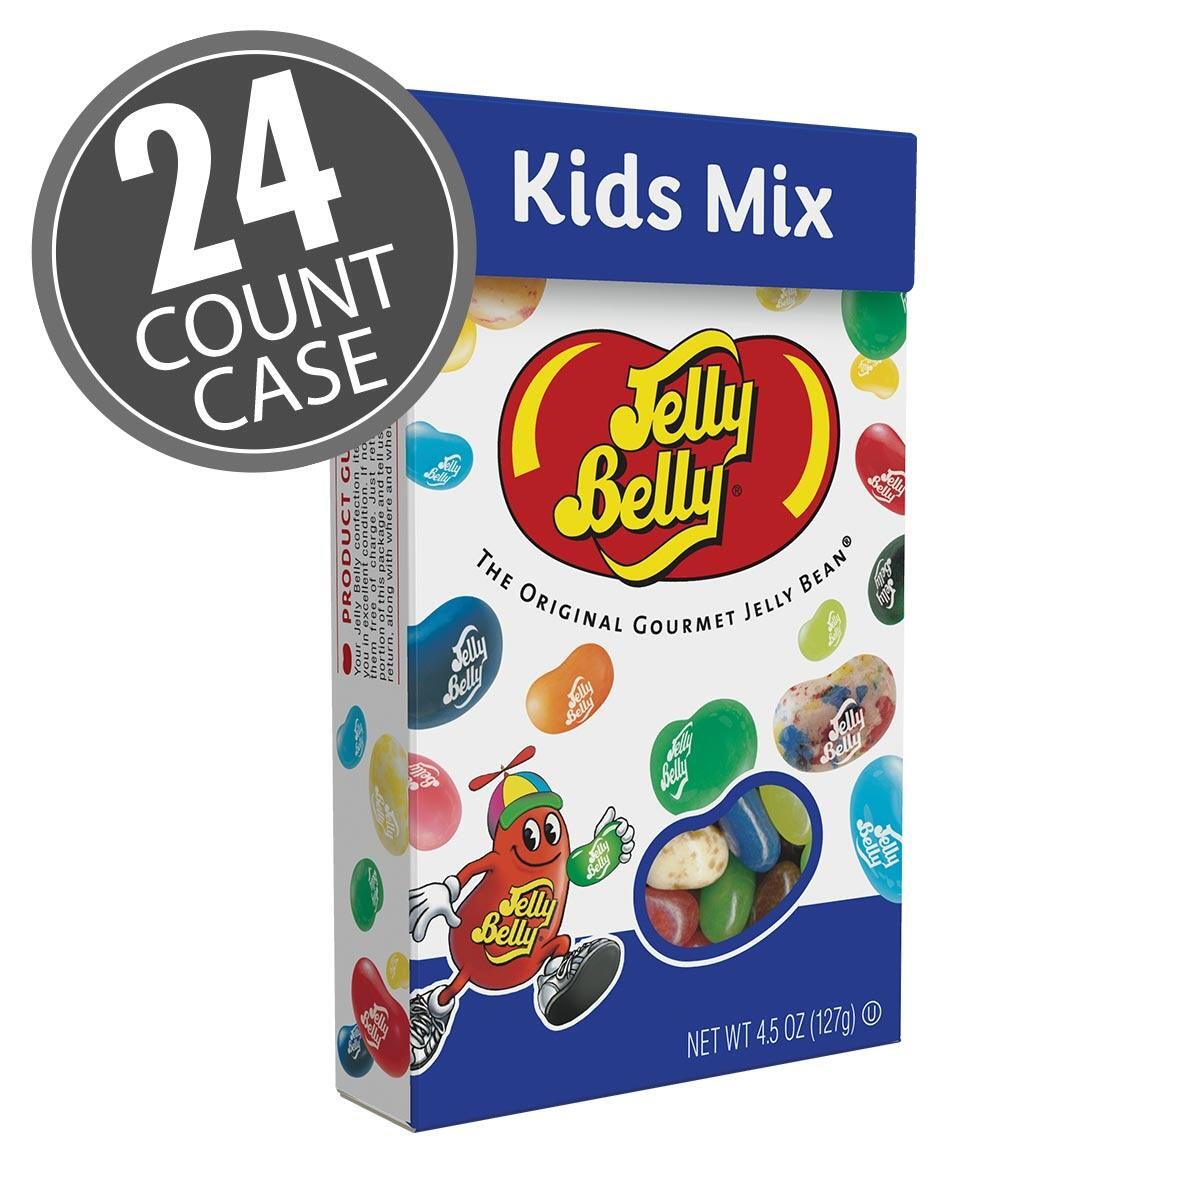 Kids Mix Jelly Beans 4.5 oz Flip-Top Boxes 24-Count Case